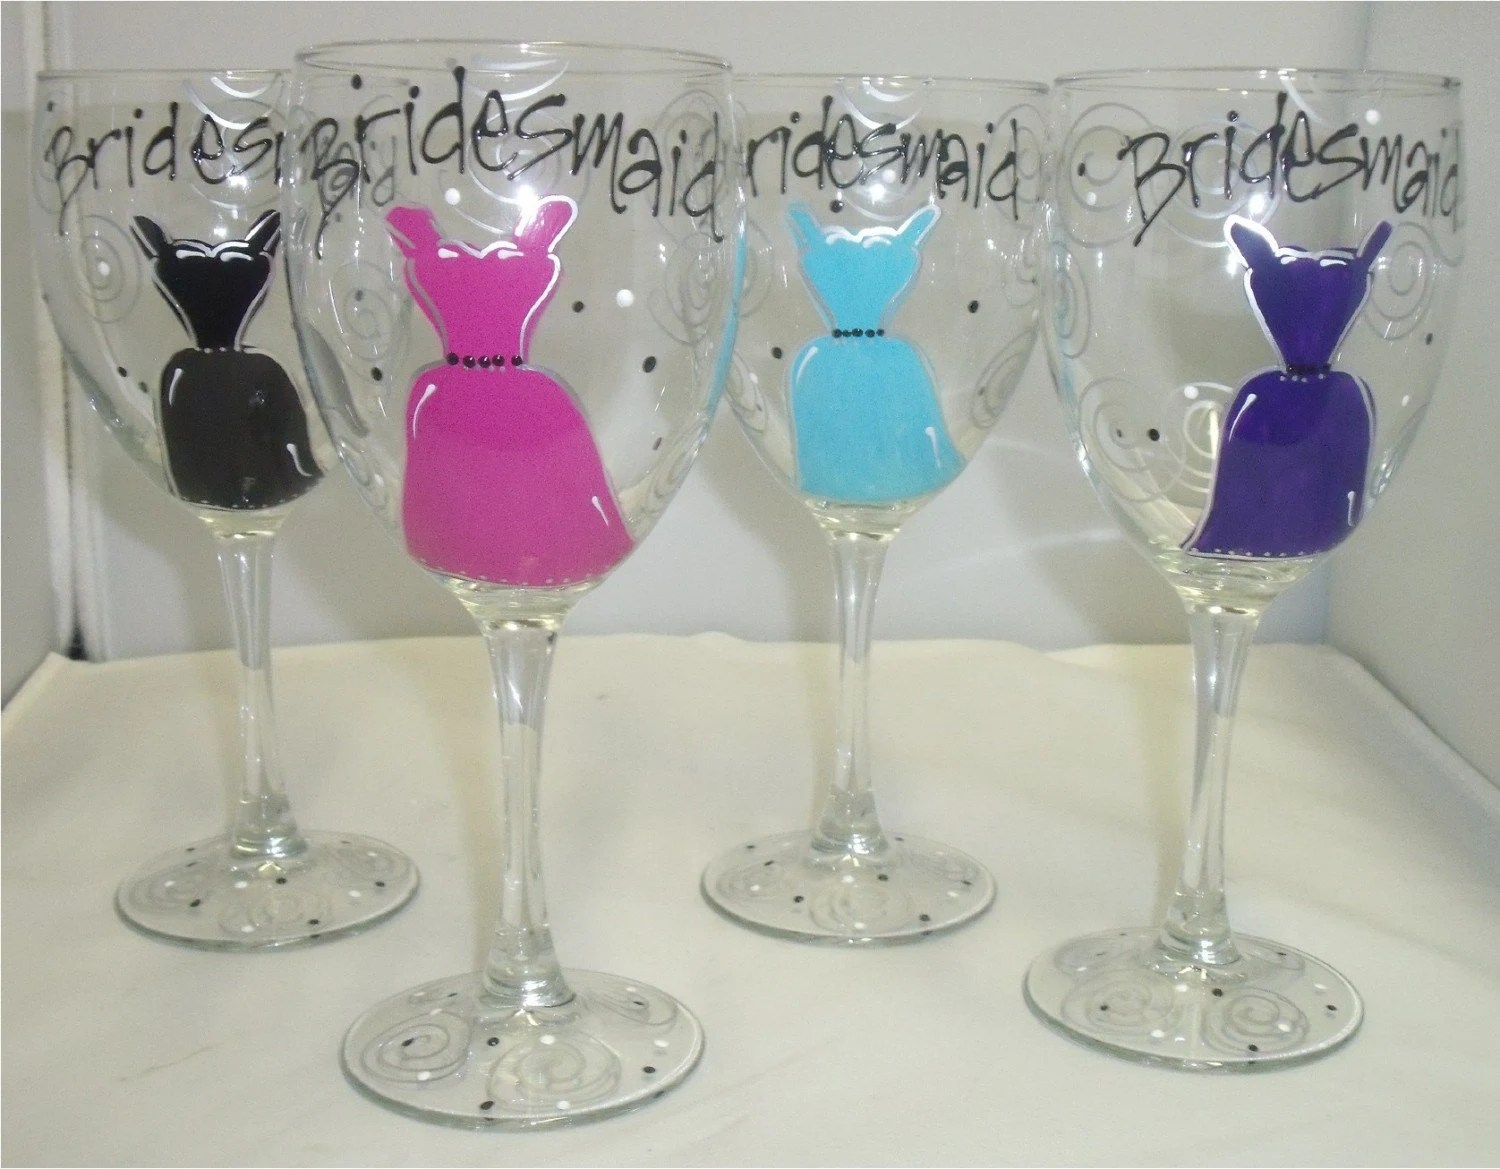 Bridesmaid Dress Bridal Party Hand Painted Wine Glasses - 2 Glasses